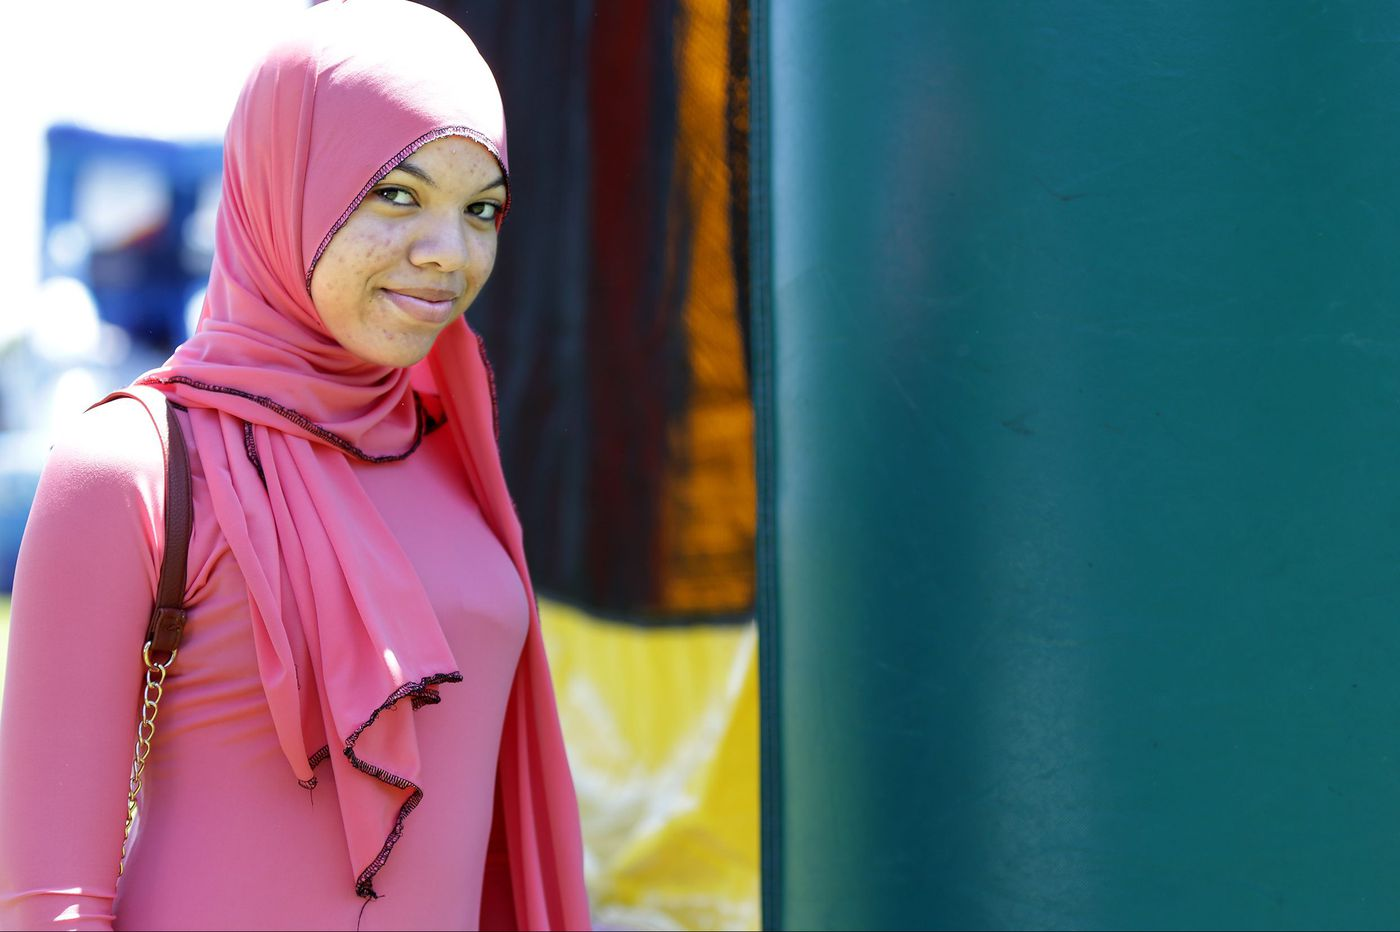 Photos: How Philly Muslims 'show up and show out' for Eid